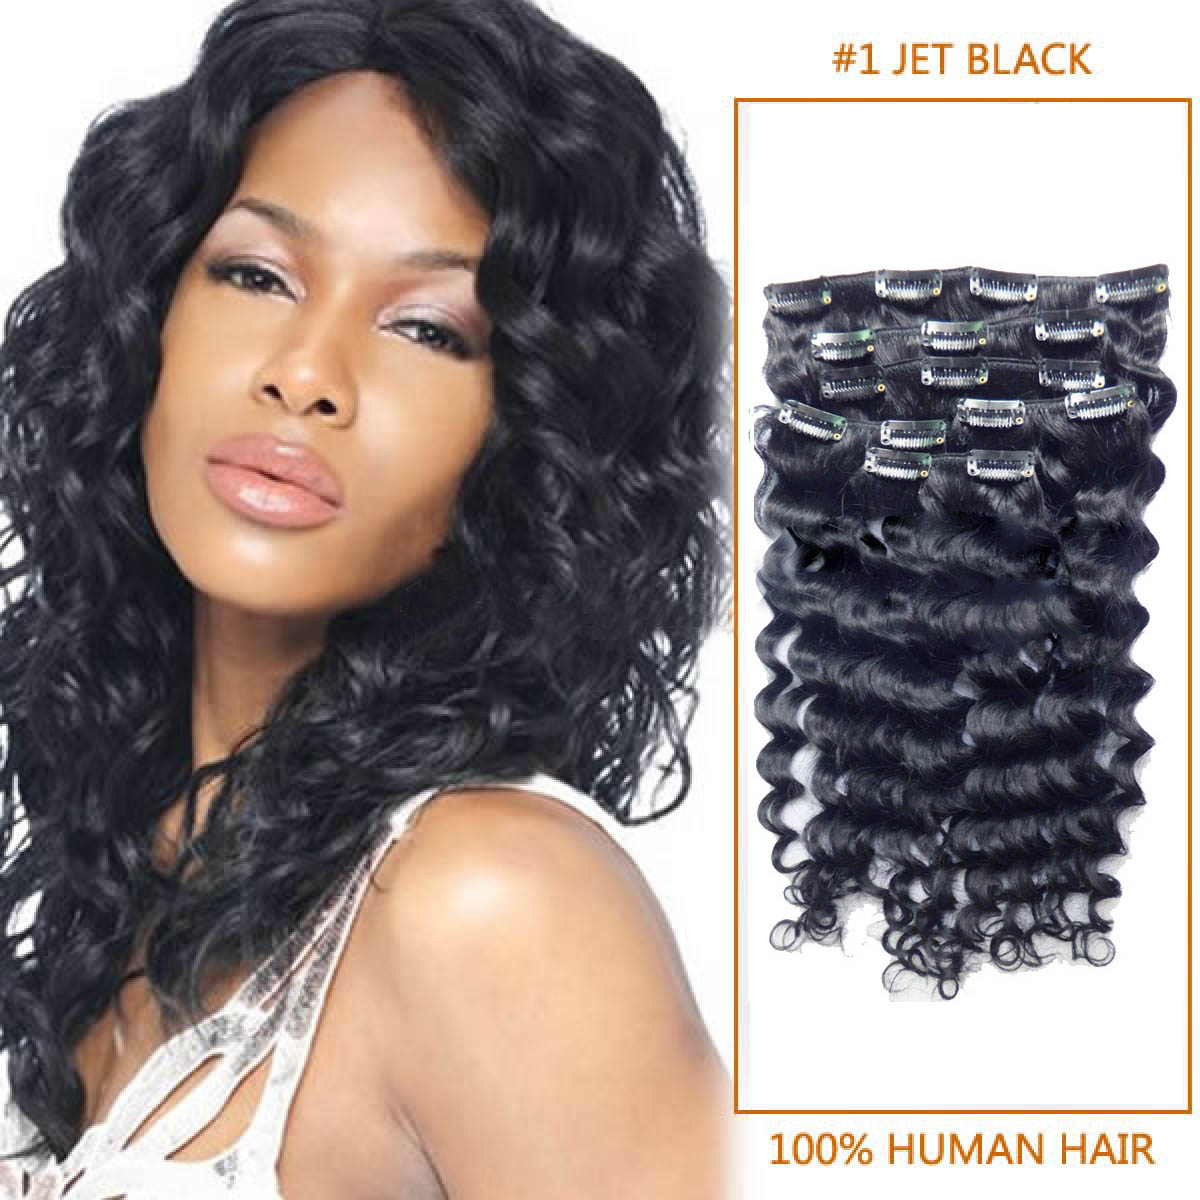 26 Inch New 1 Jet Black Clip In Remy Hair Extensions Curly 7 Pcs Pack